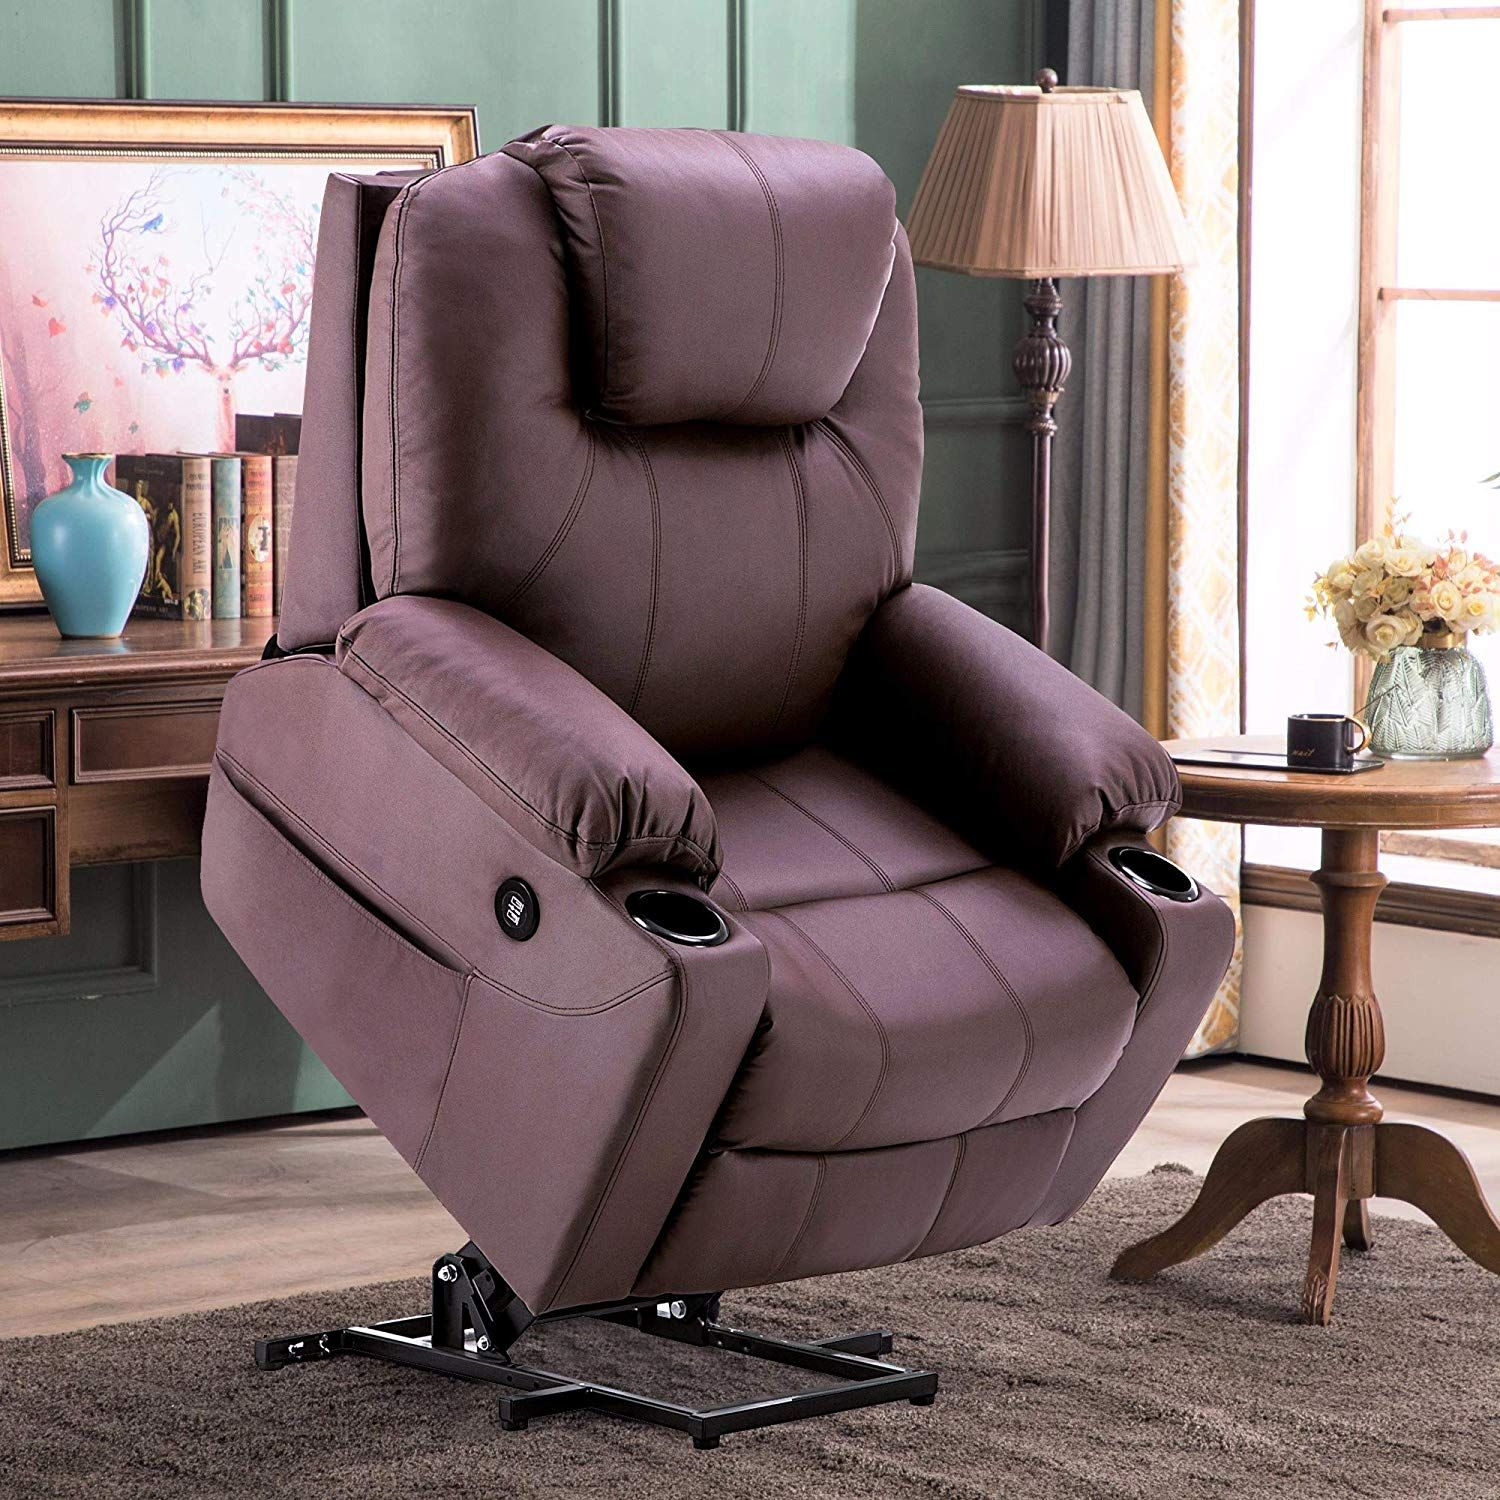 Electric power lift recliner chair sofa with